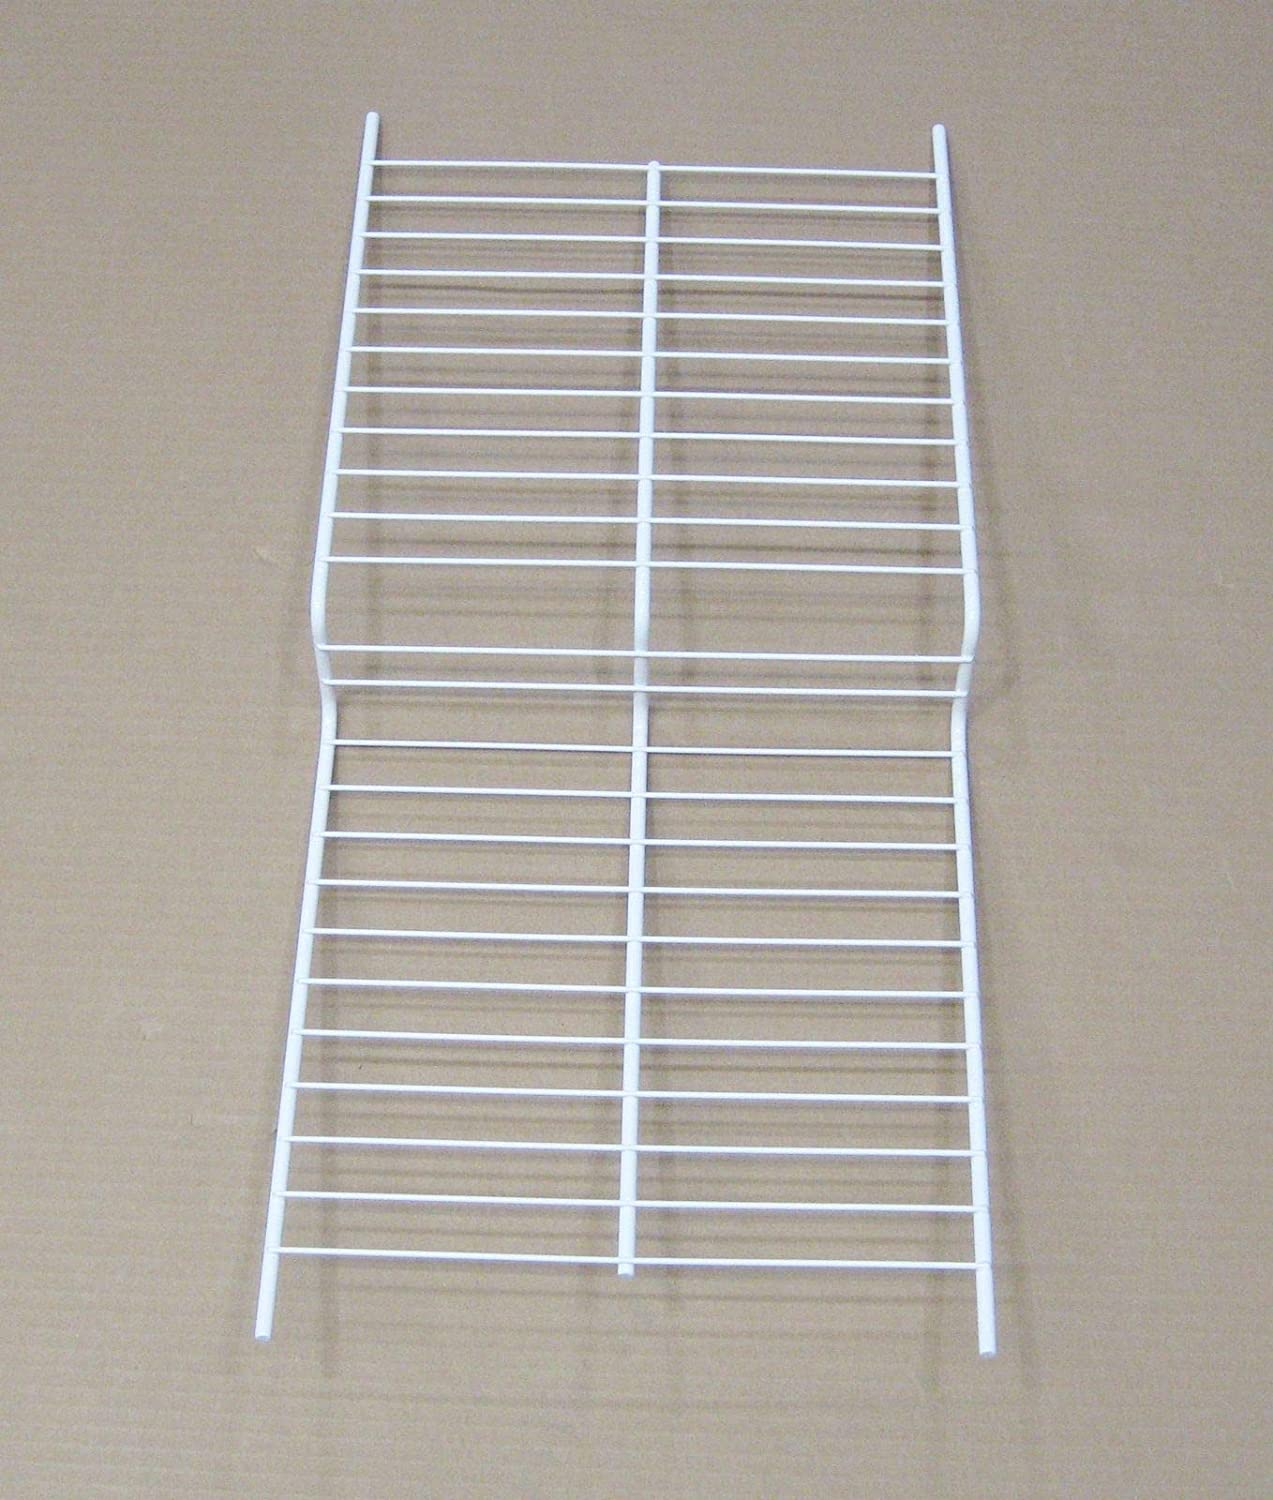 WR71X2086 Refrigerator Freezer Wire Rack Replacement for GE